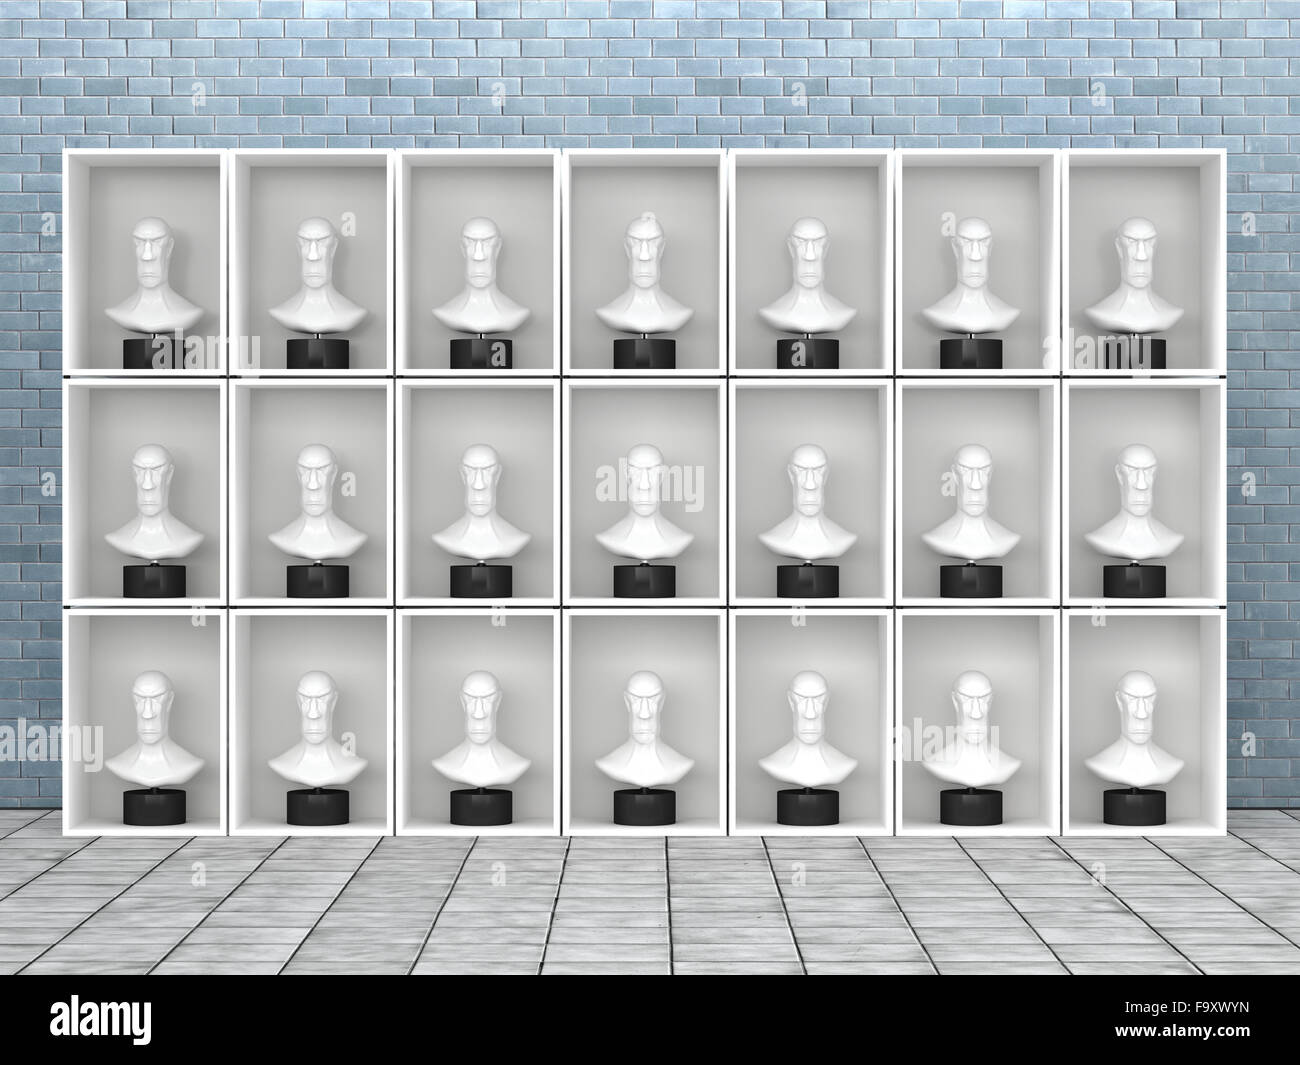 Identical busts in shelf, 3D Rendering - Stock Image